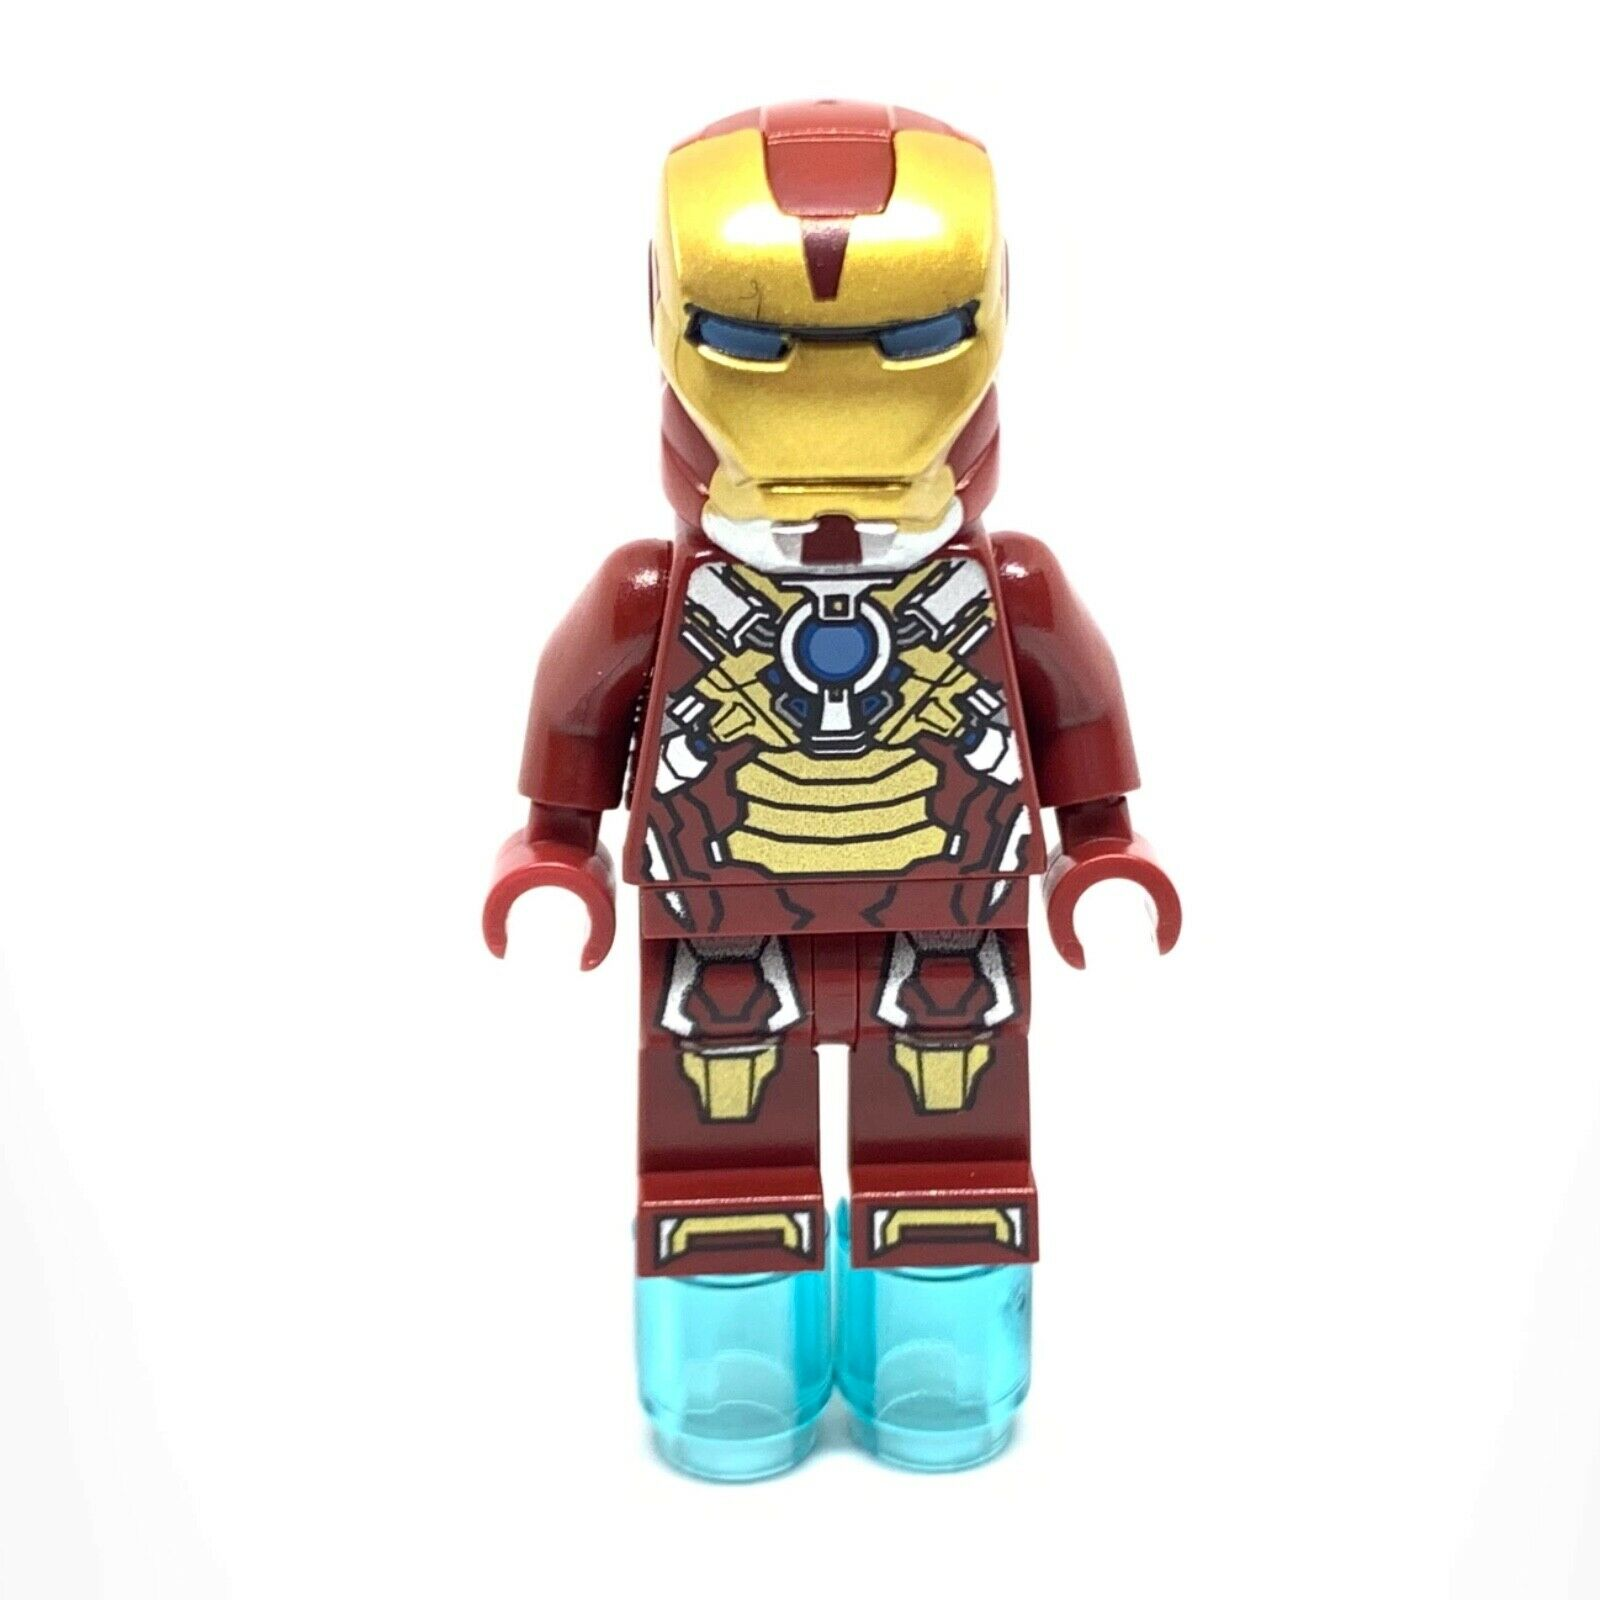 SH073  Lego Iron Man Mark 17 Heart Breaker armadura 2013 Minifigura 76008